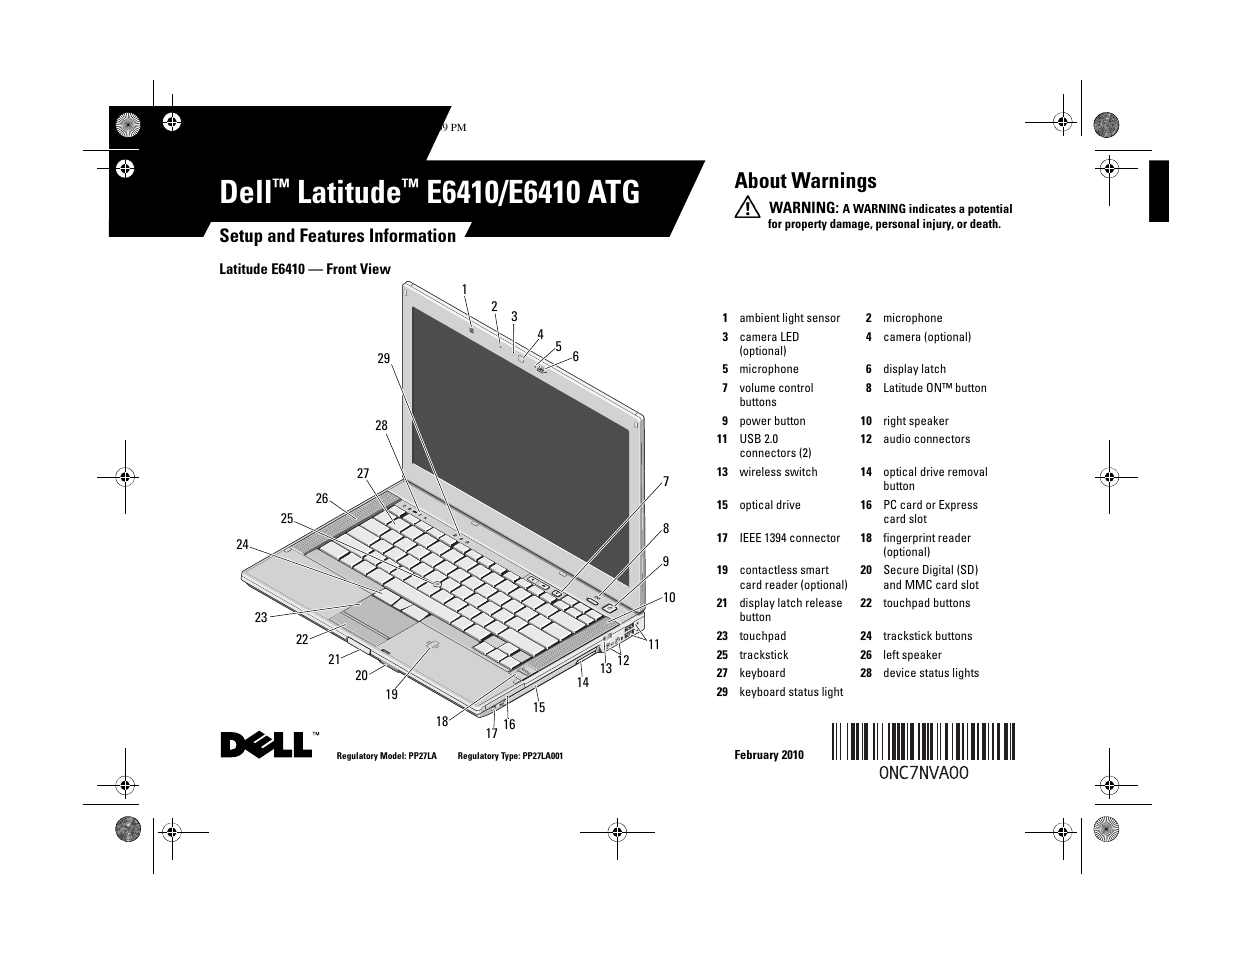 dell parts manual various owner manual guide u2022 rh justk co Diagram Dell 2335Dn Dell 2335Dn Multifunction Laser Printer